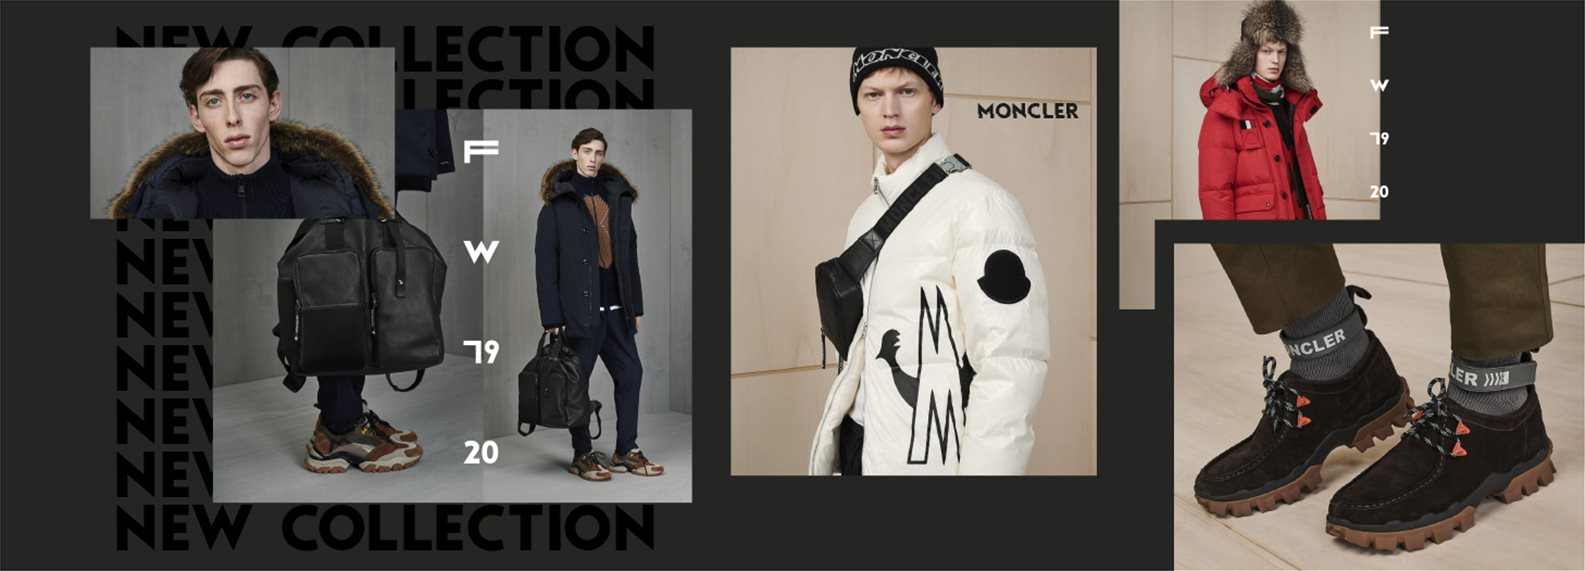 NEW COLLECTION! image